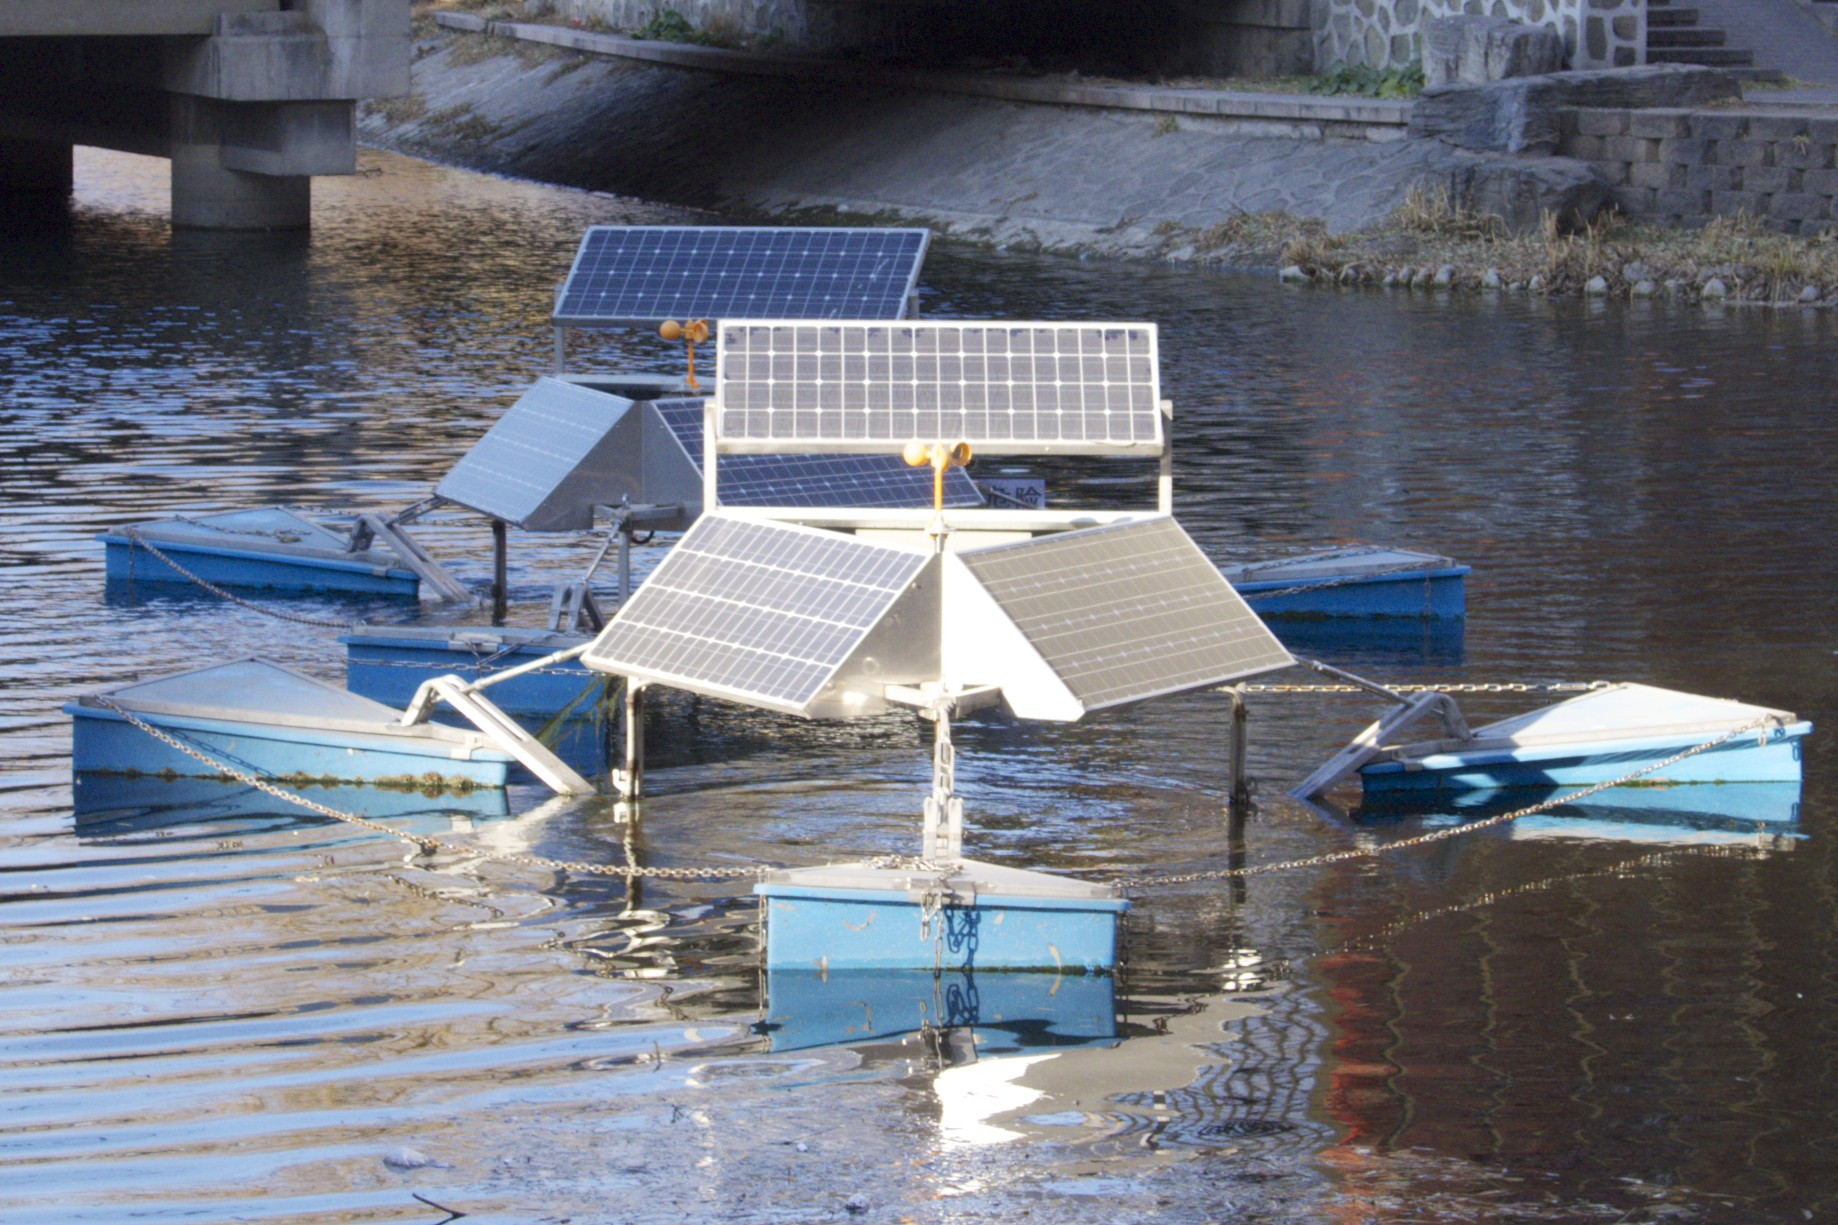 Solar powered ventilation of standing waters.